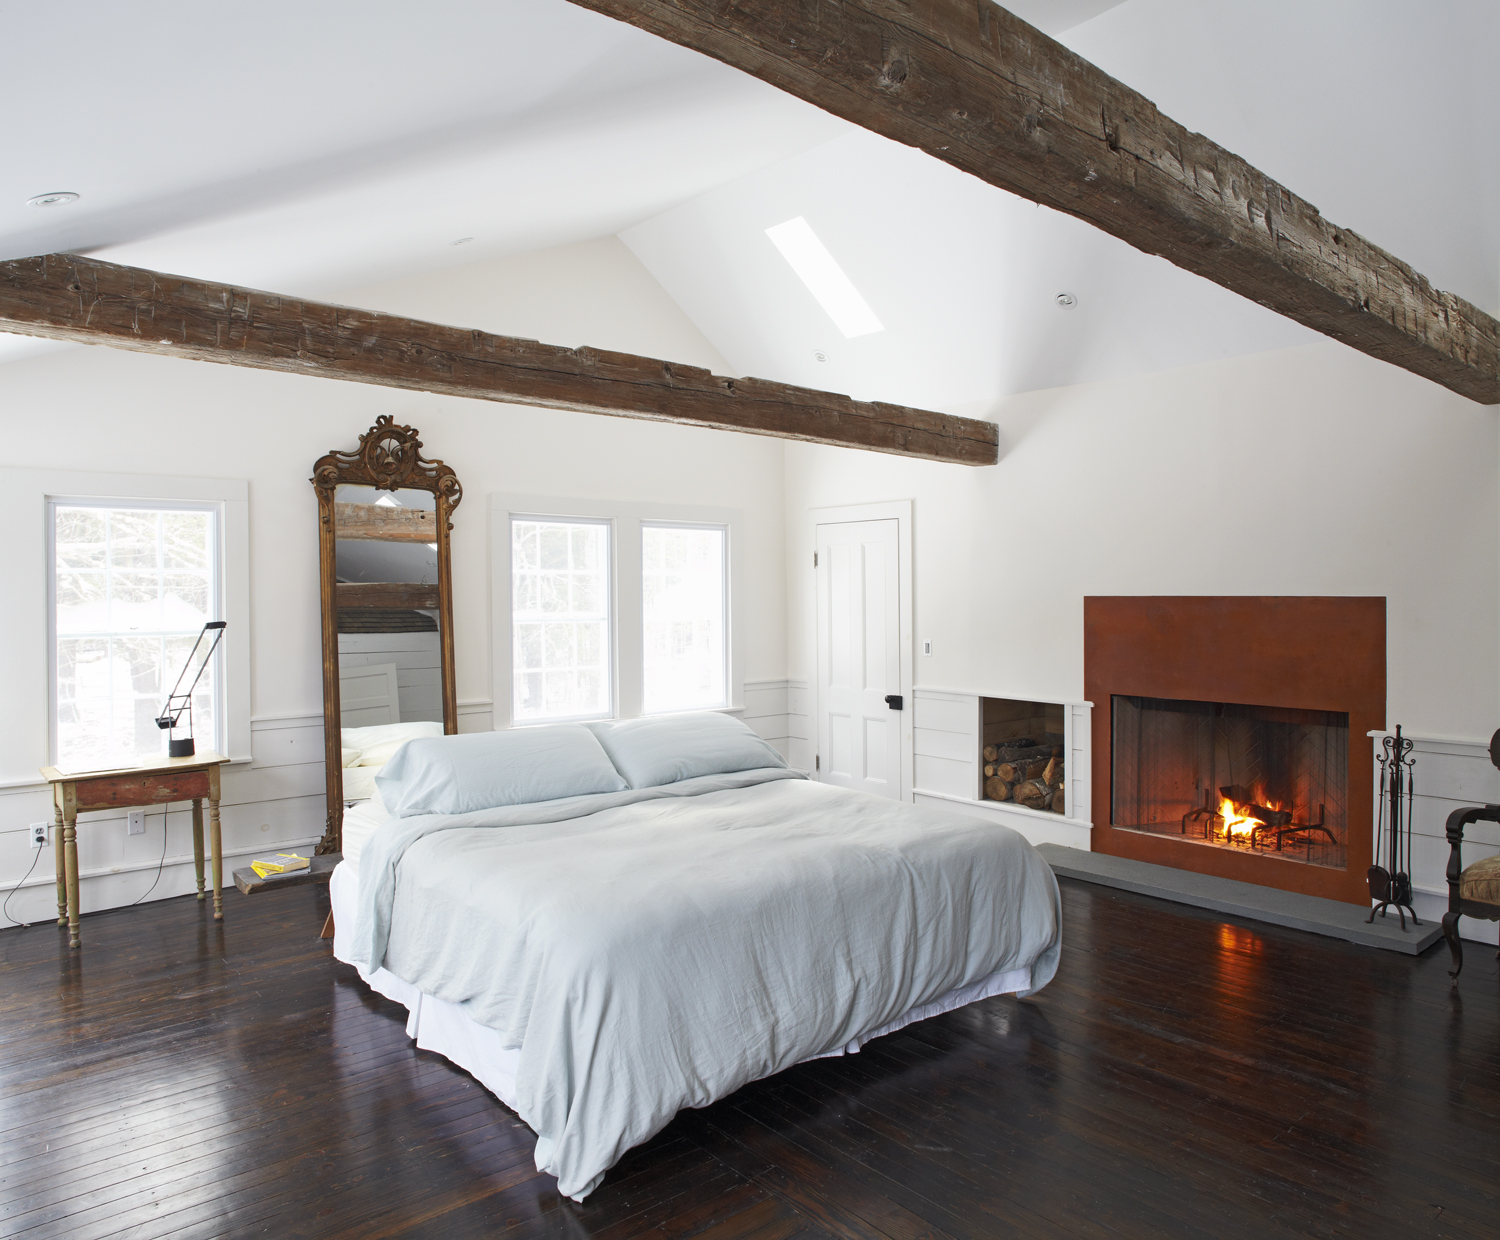 A large master bedroom is also a grand wedding suite at the Floating Farmhouse Catskills vacation rental in upstate New York.